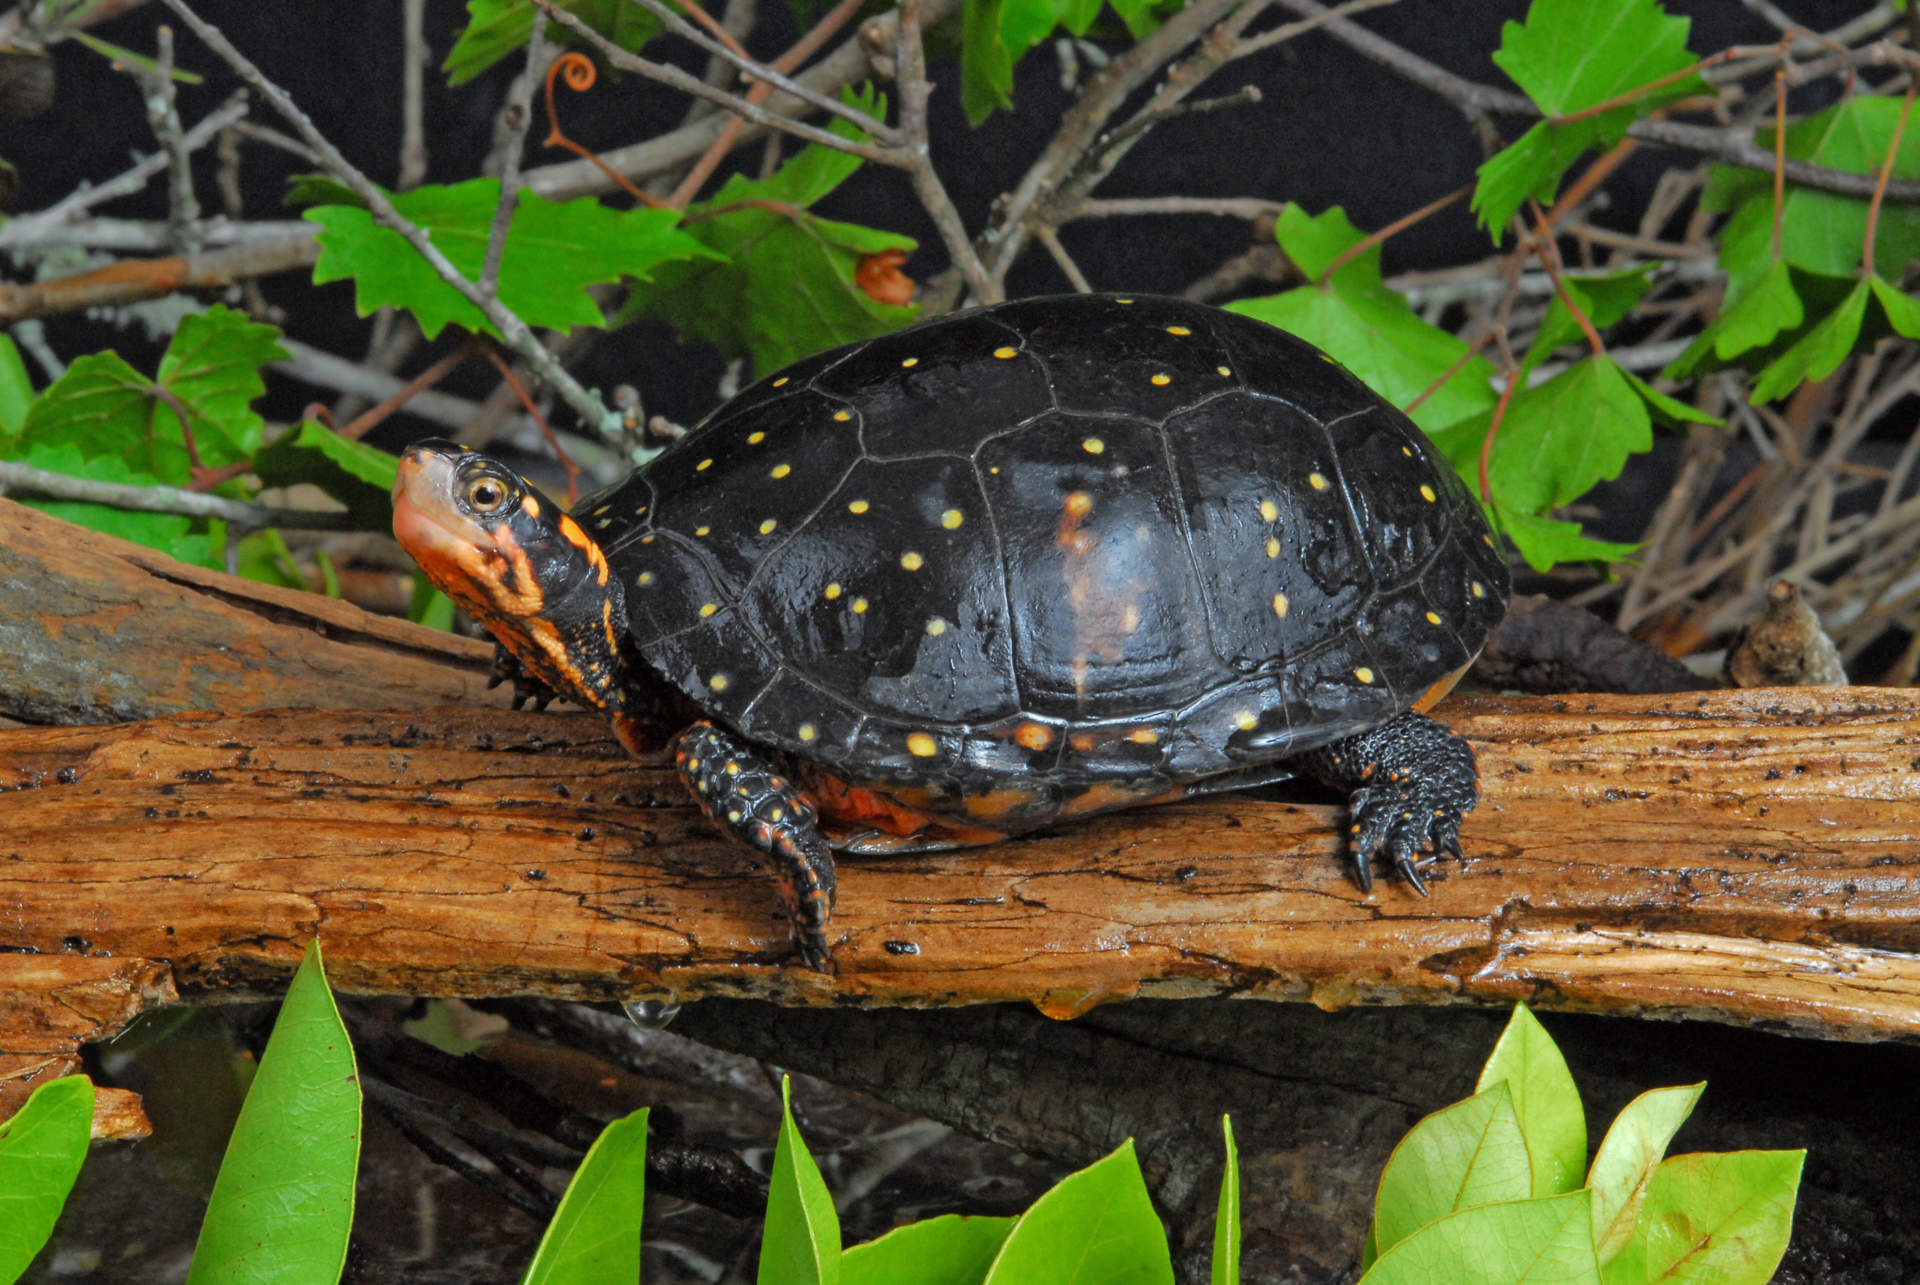 a turtle sitting on a log with its neck stretched and looking at the camera